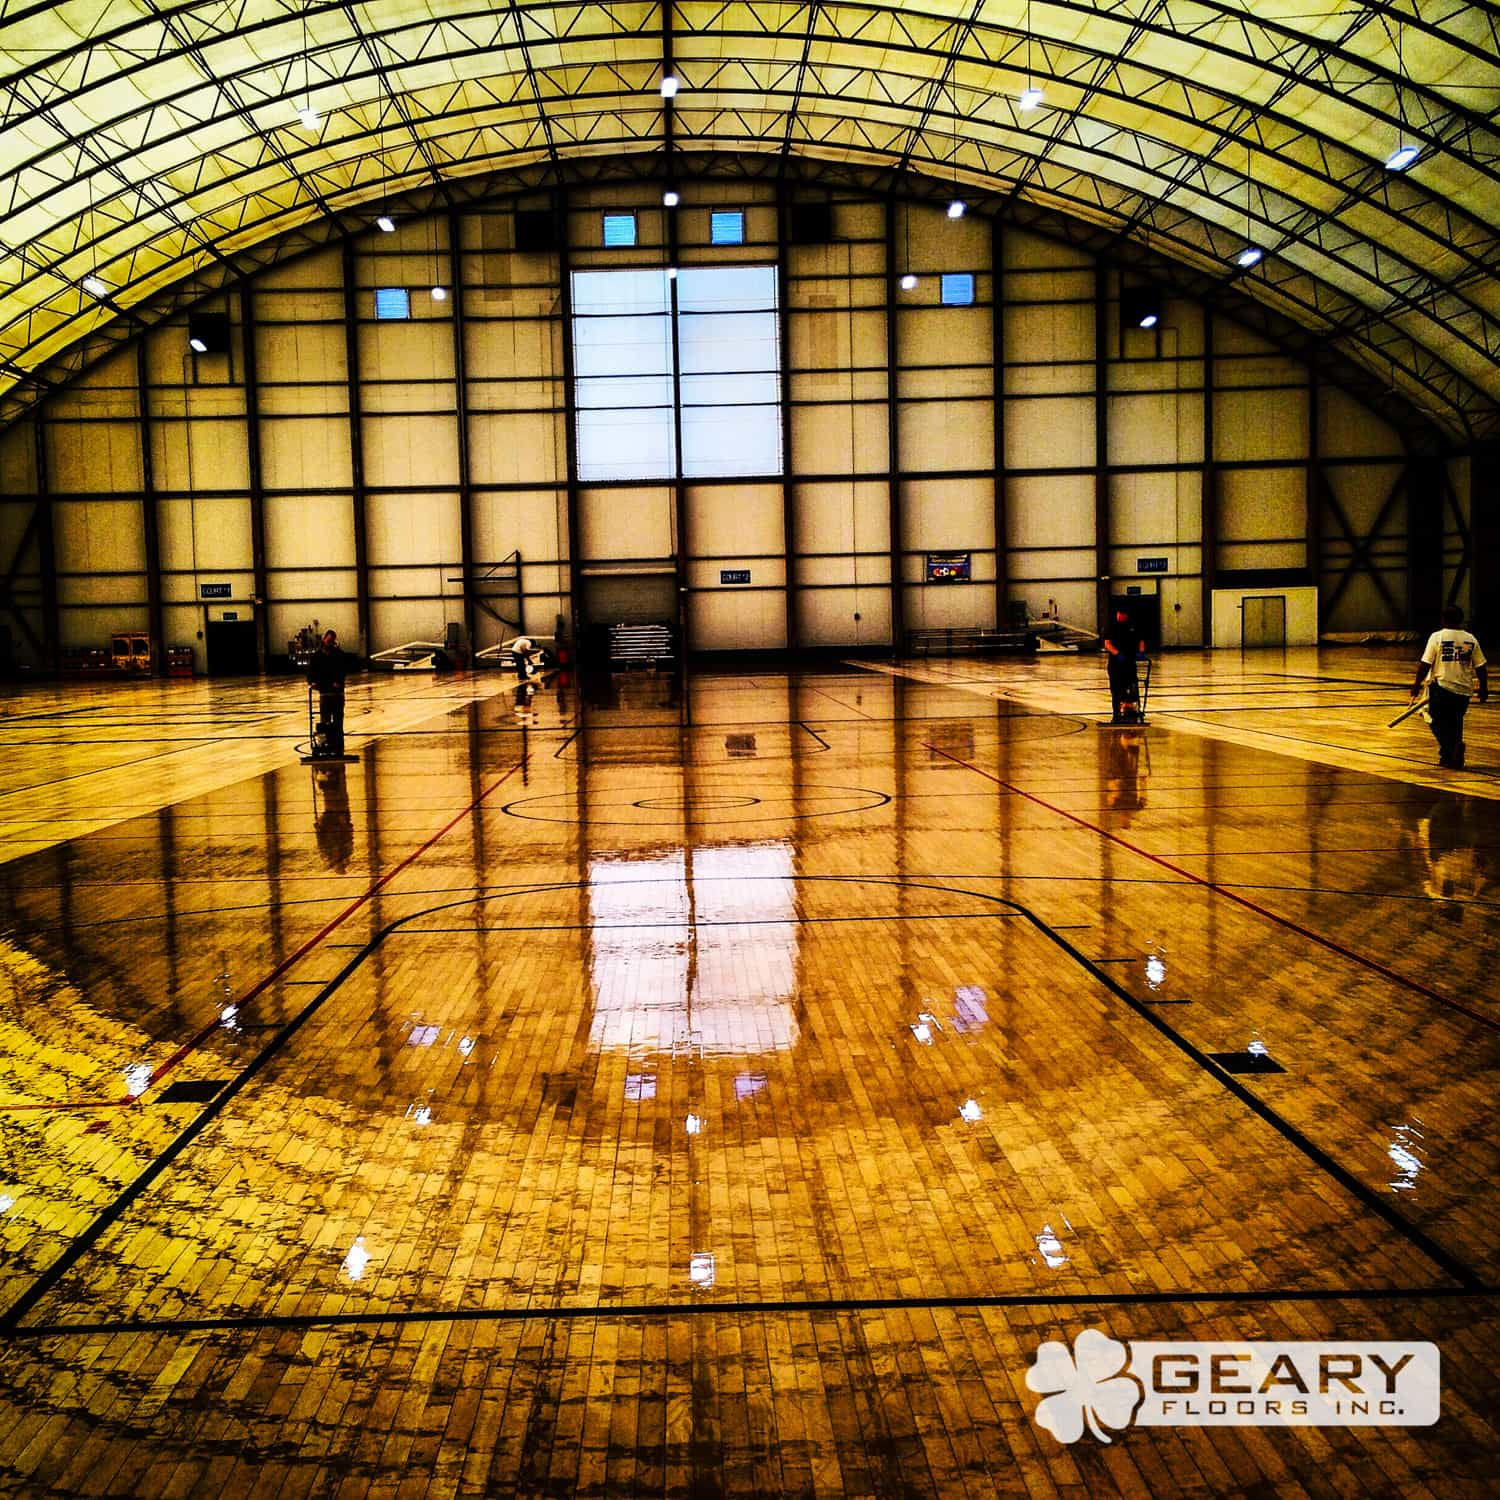 Geary Flooring Courts Athletic Flooring 593 - Basketball Court Flooring - Wood Gym Flooring - Hardwood Flooring San Diego